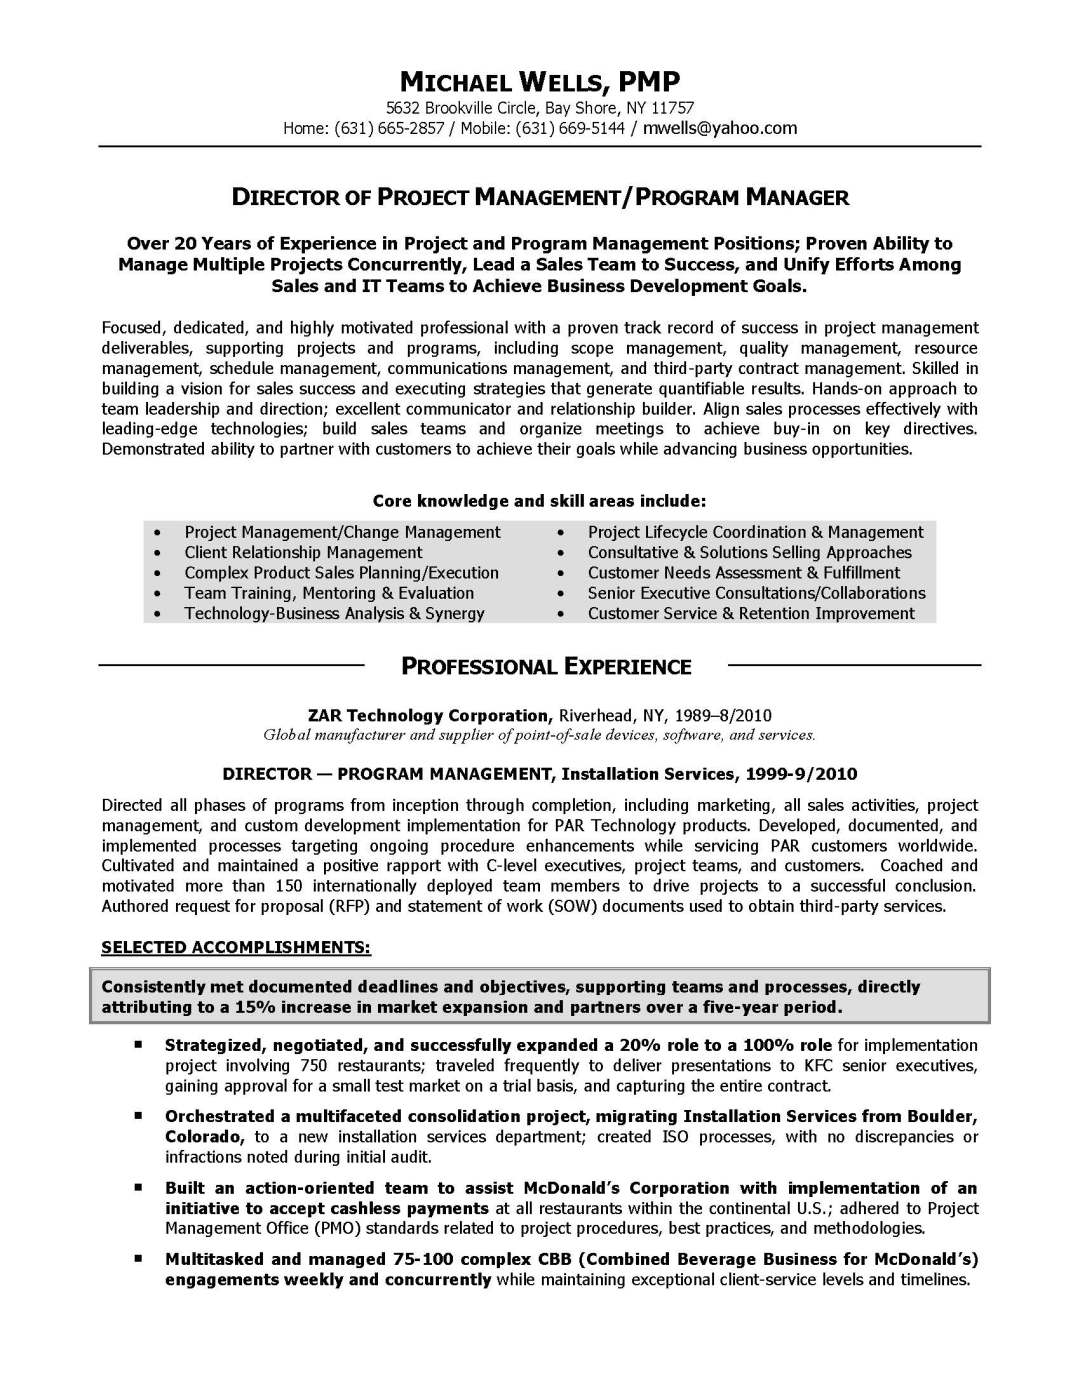 project management director resume sample, provided by Elite Resume Writing Services